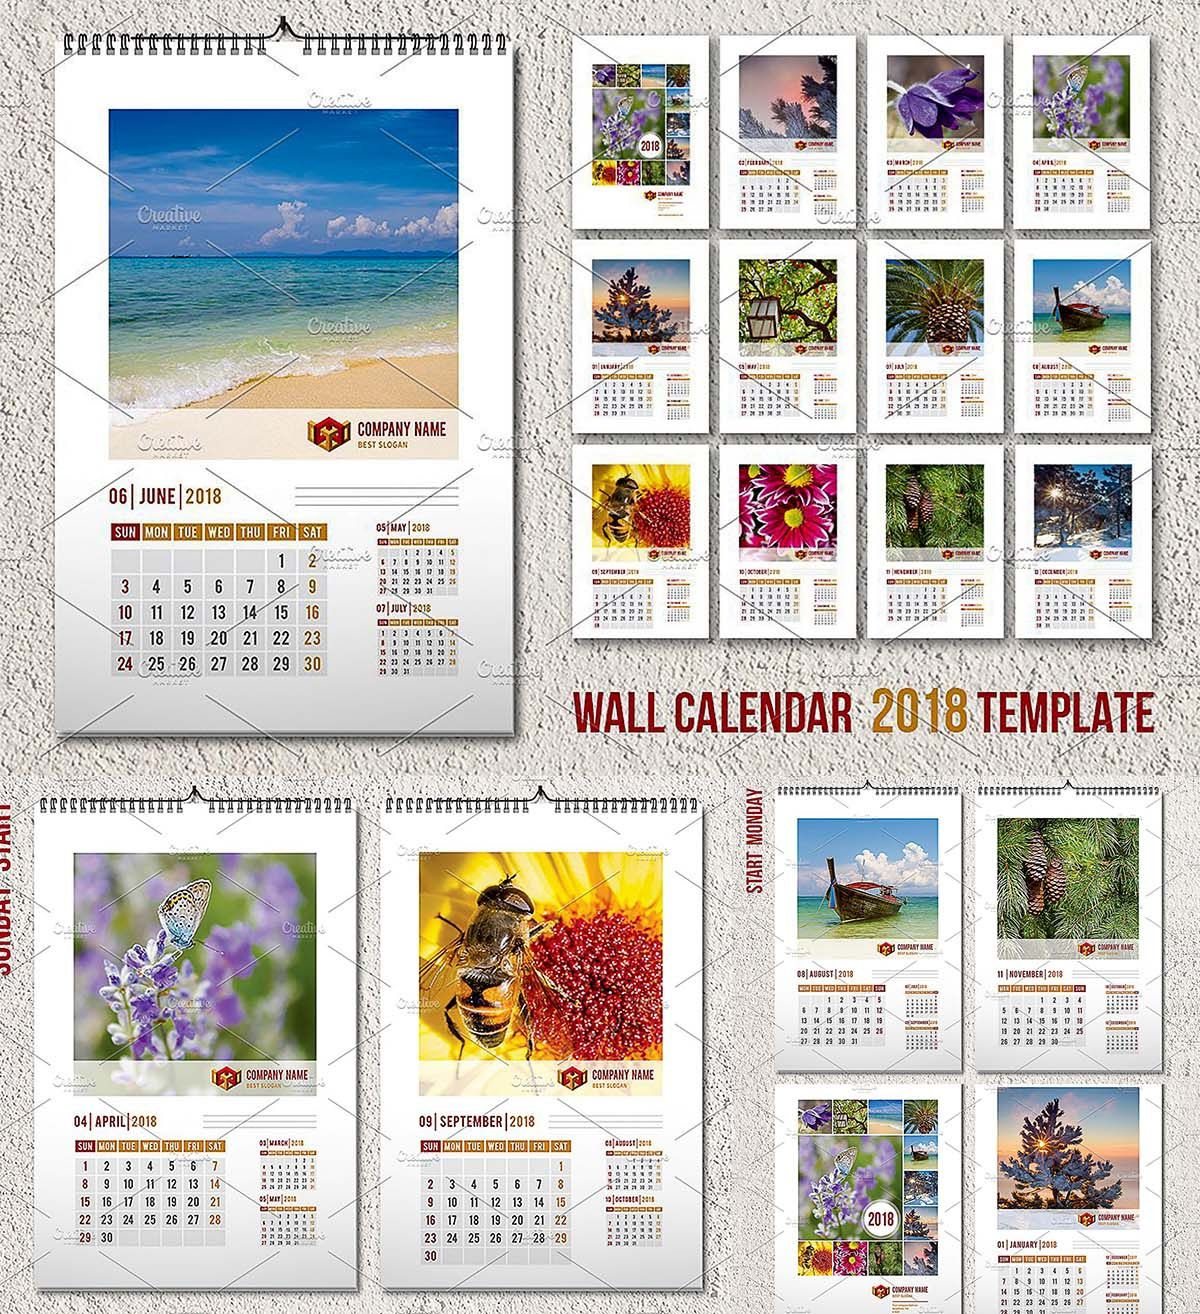 009 Stupendou Calendar Template Free Download High Def  2020 Powerpoint Table Design 2019 MalaysiaFull